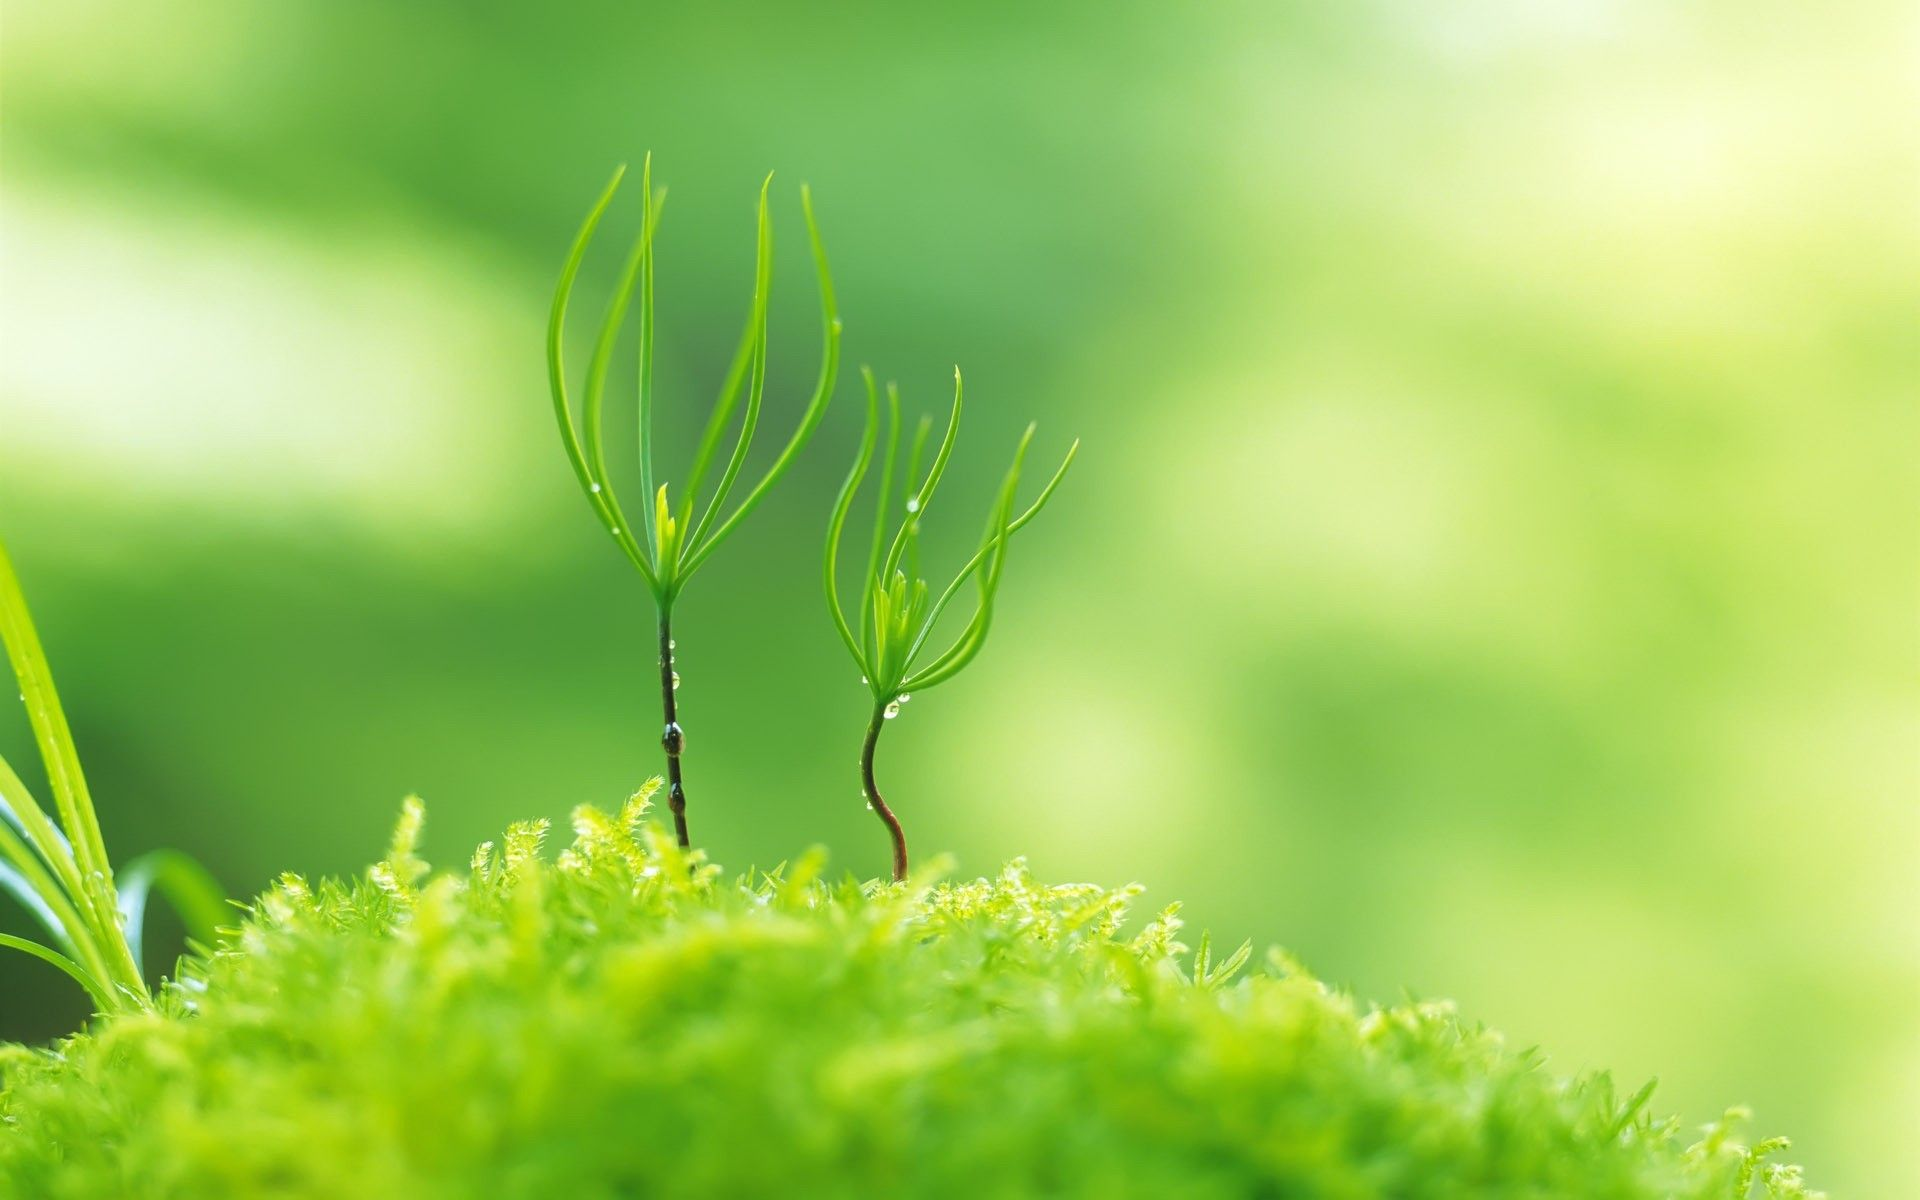 1920x1200 1080p Nature Hd Wallpapers Nature Plants Green Nature Green Nature Wallpaper